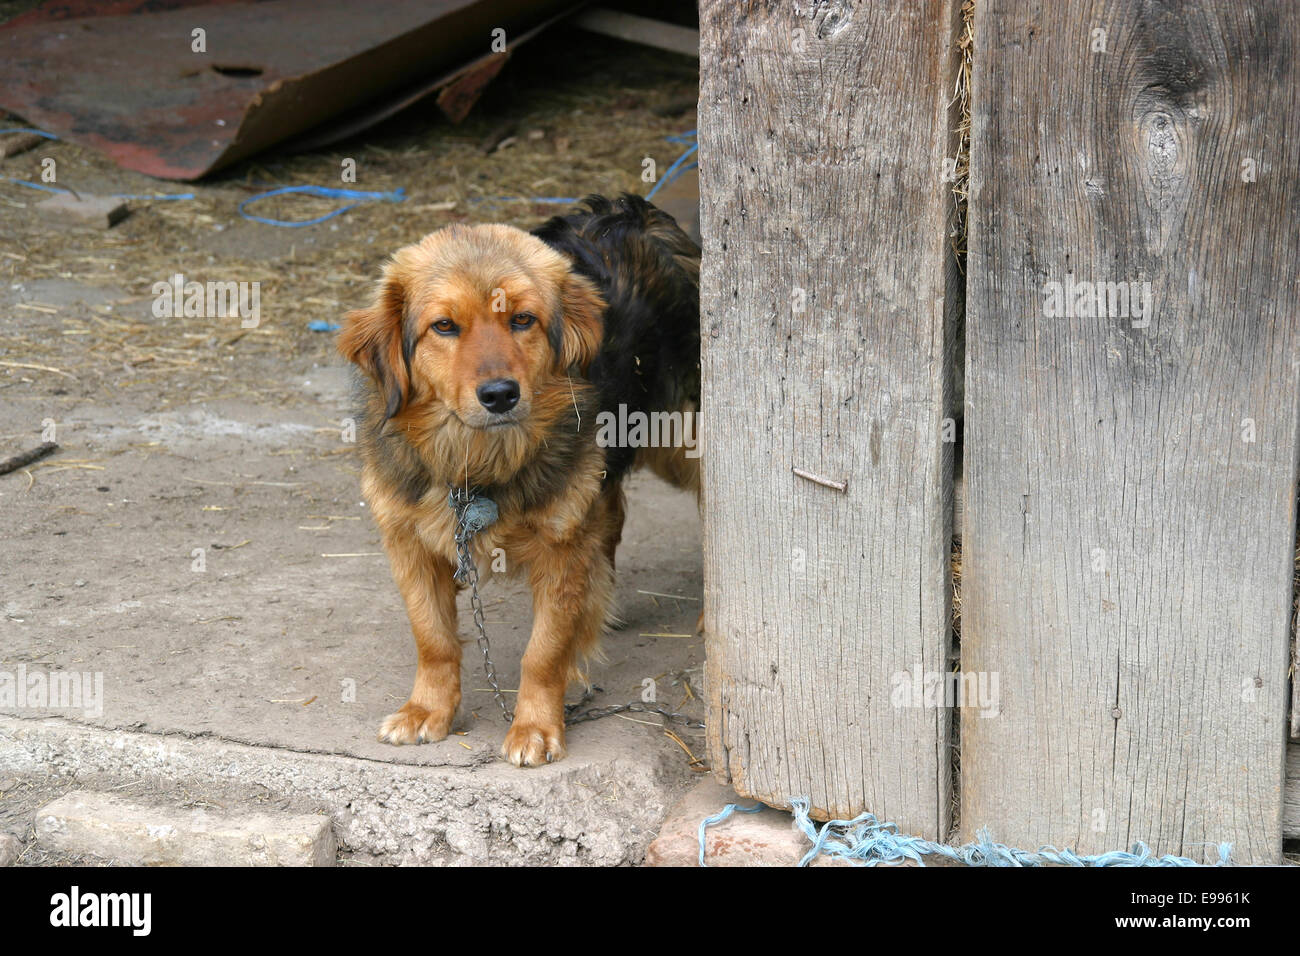 Chained small brown watchdog puppy in wooden shed - Stock Image